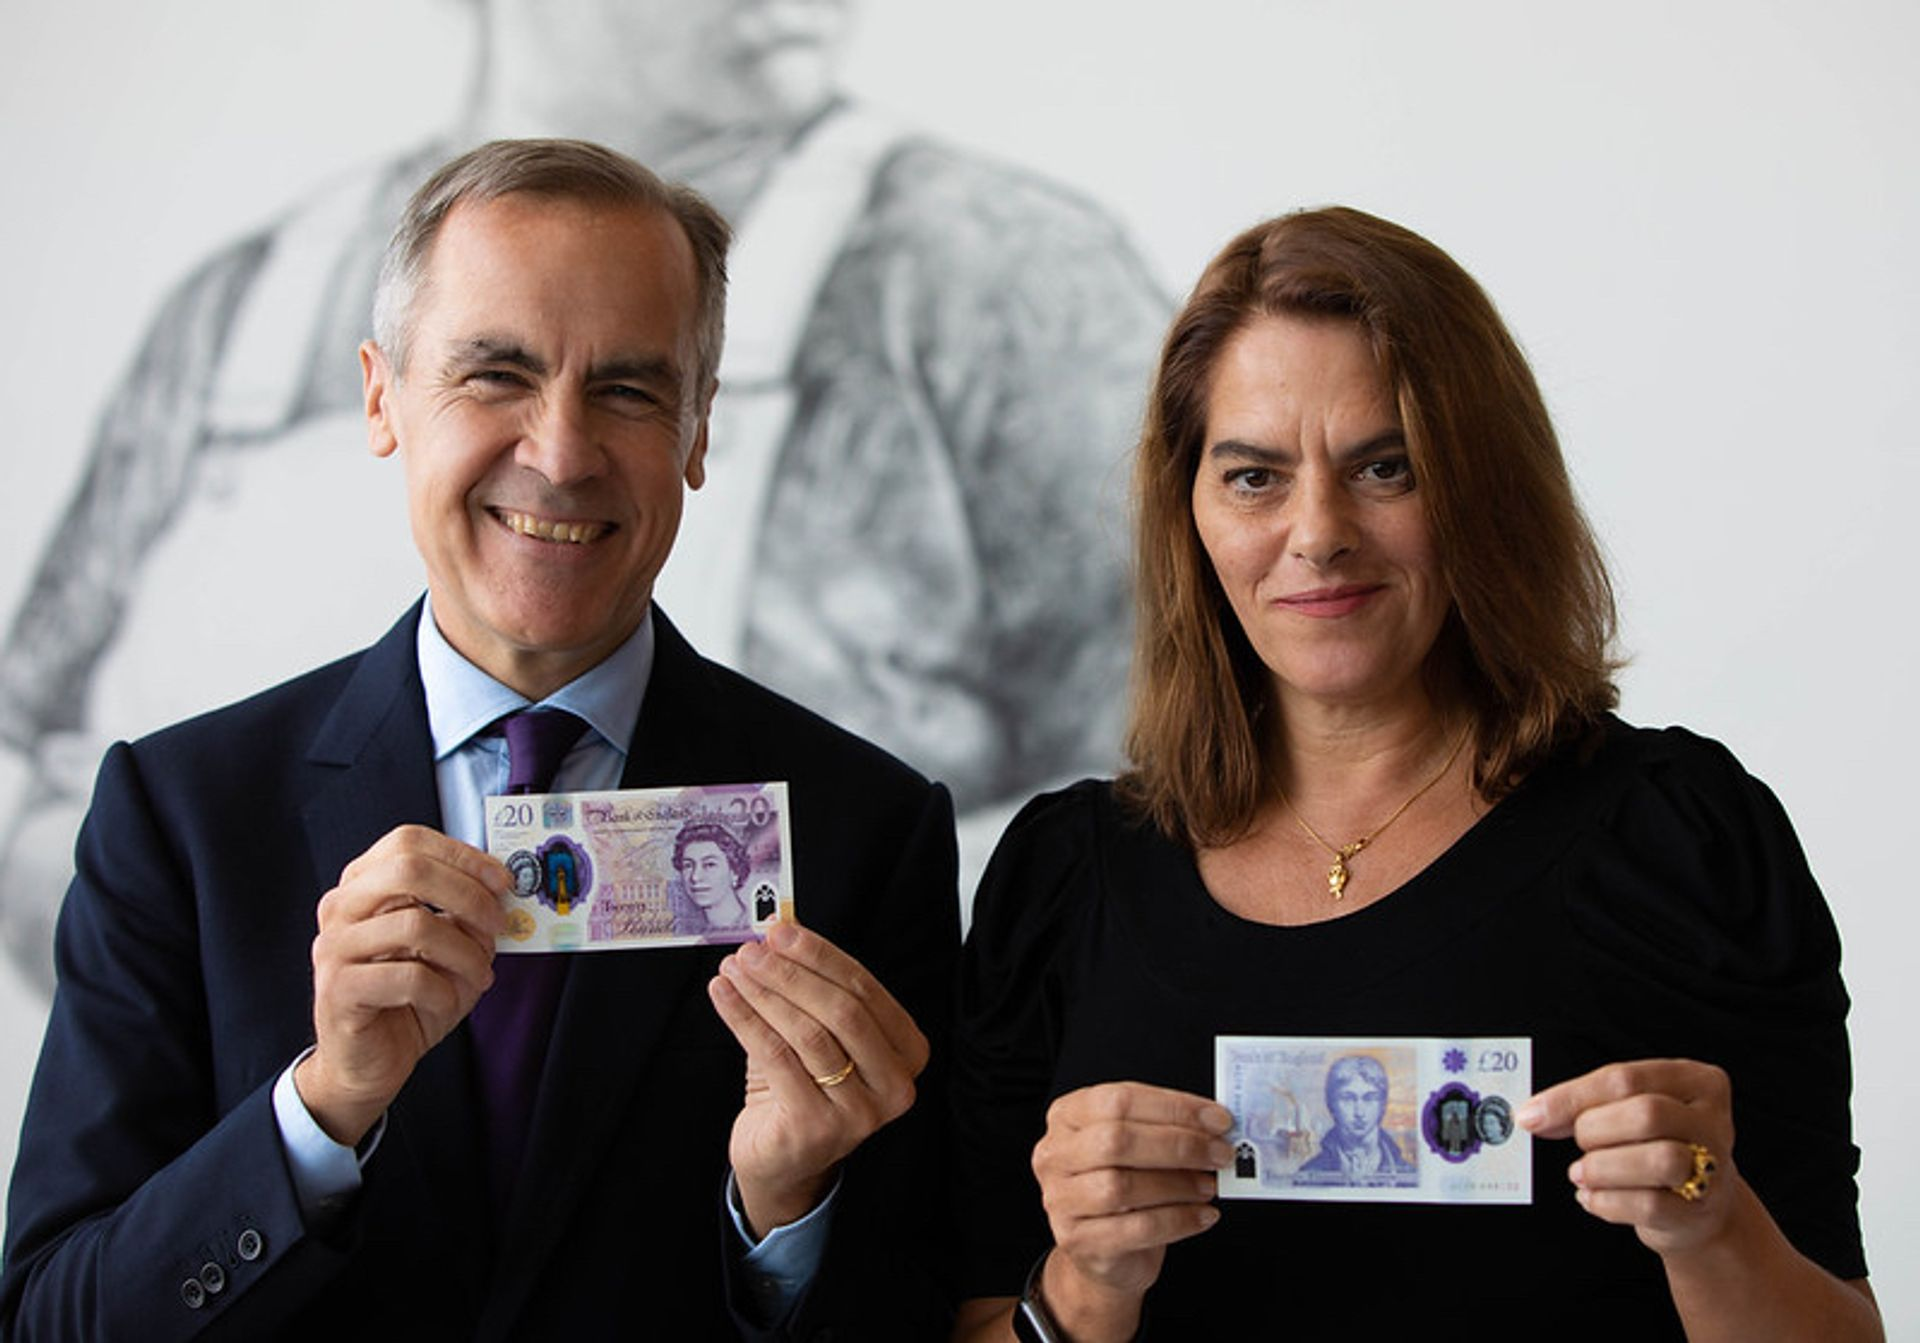 Mark Carney and Tracey Emin © Bank of England (2019)